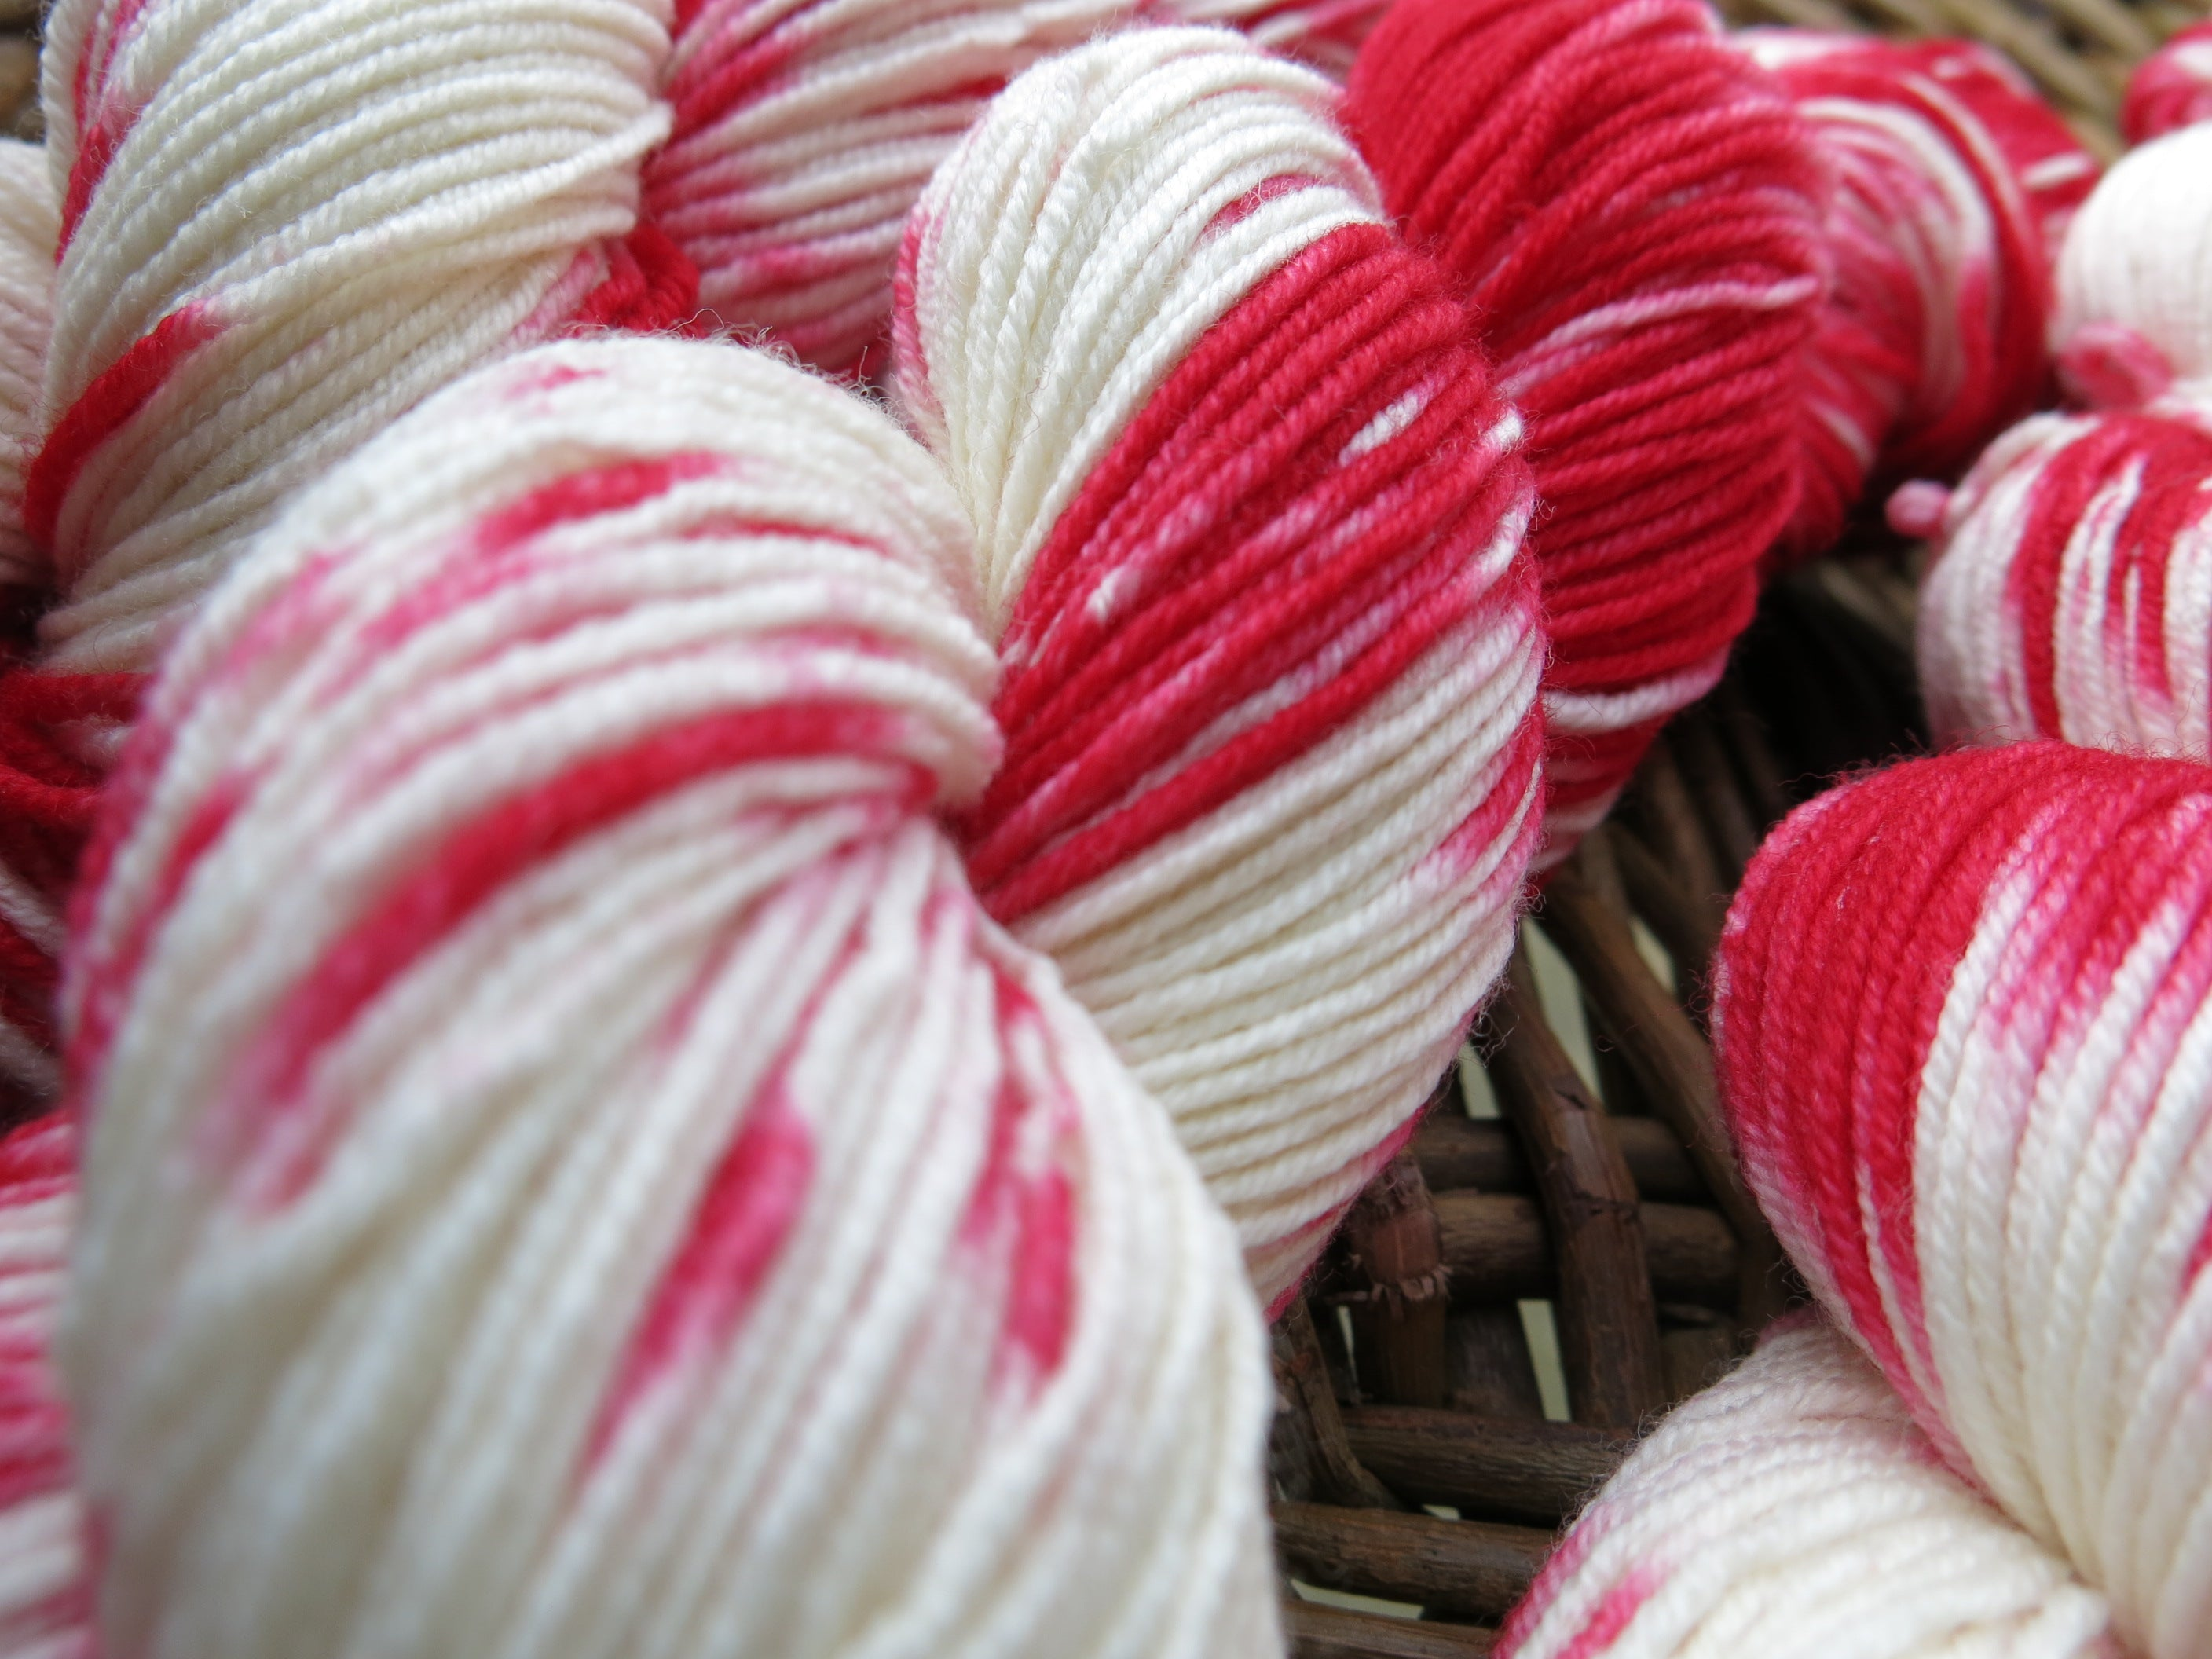 skeins of kettle dyed yarn in red and white